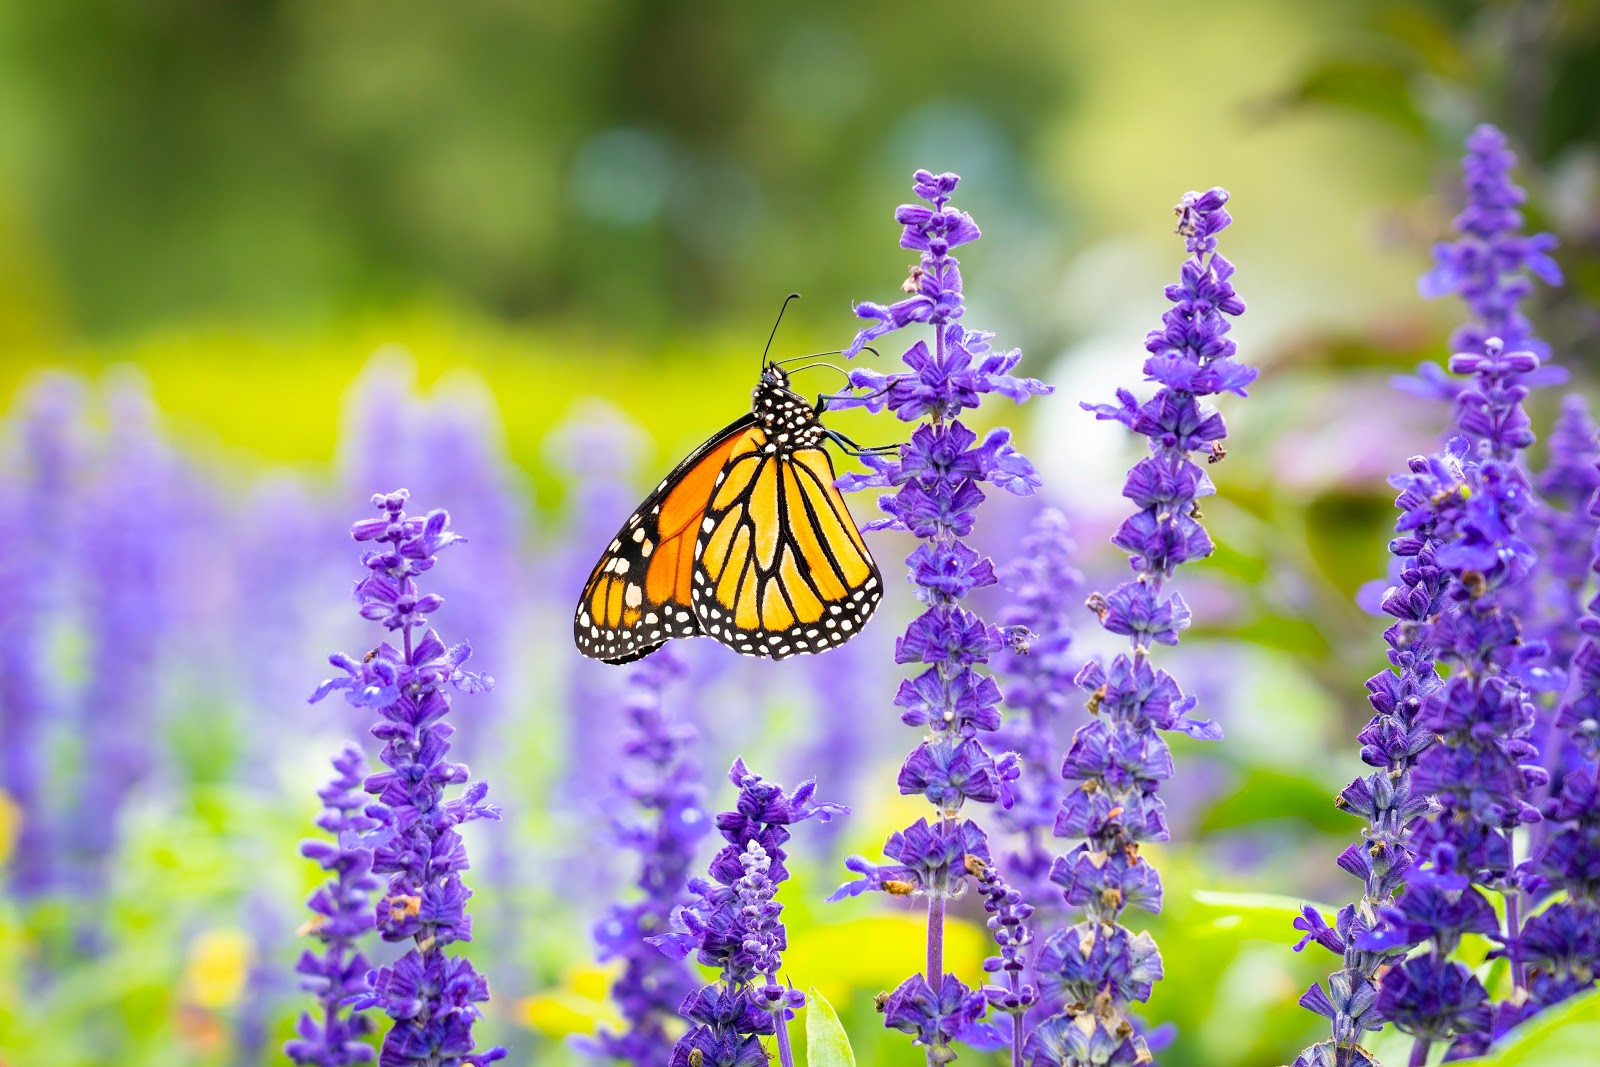 monarch-butterfly-perched-on-purple-flower-in-close-up-pictures